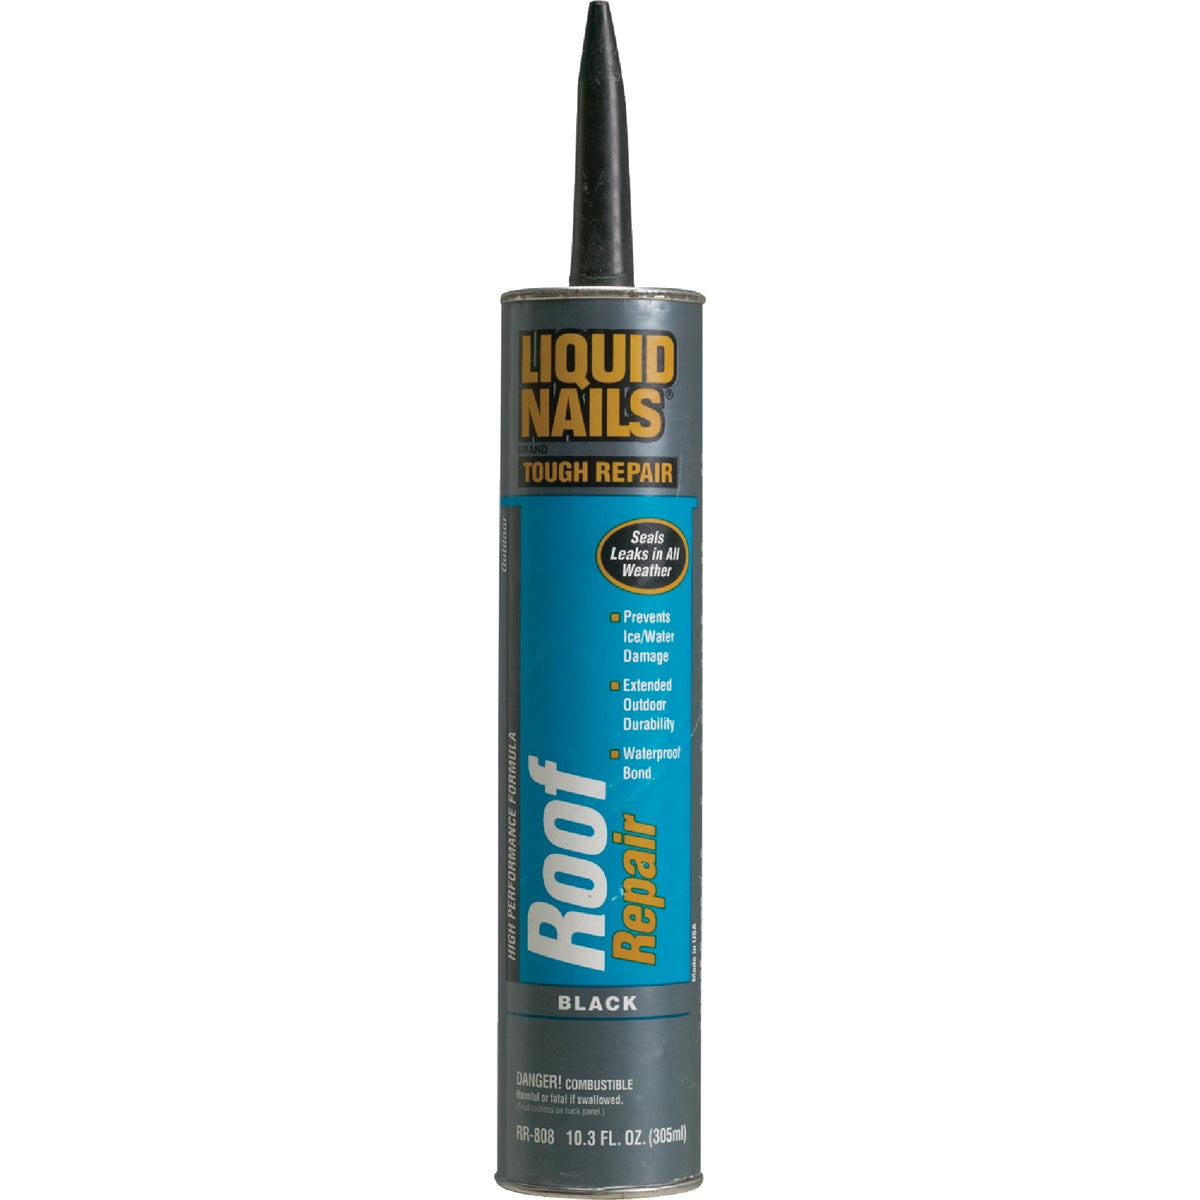 BLACK ROOF SEALANT - RR-808 by Liquid Nails/akzonob